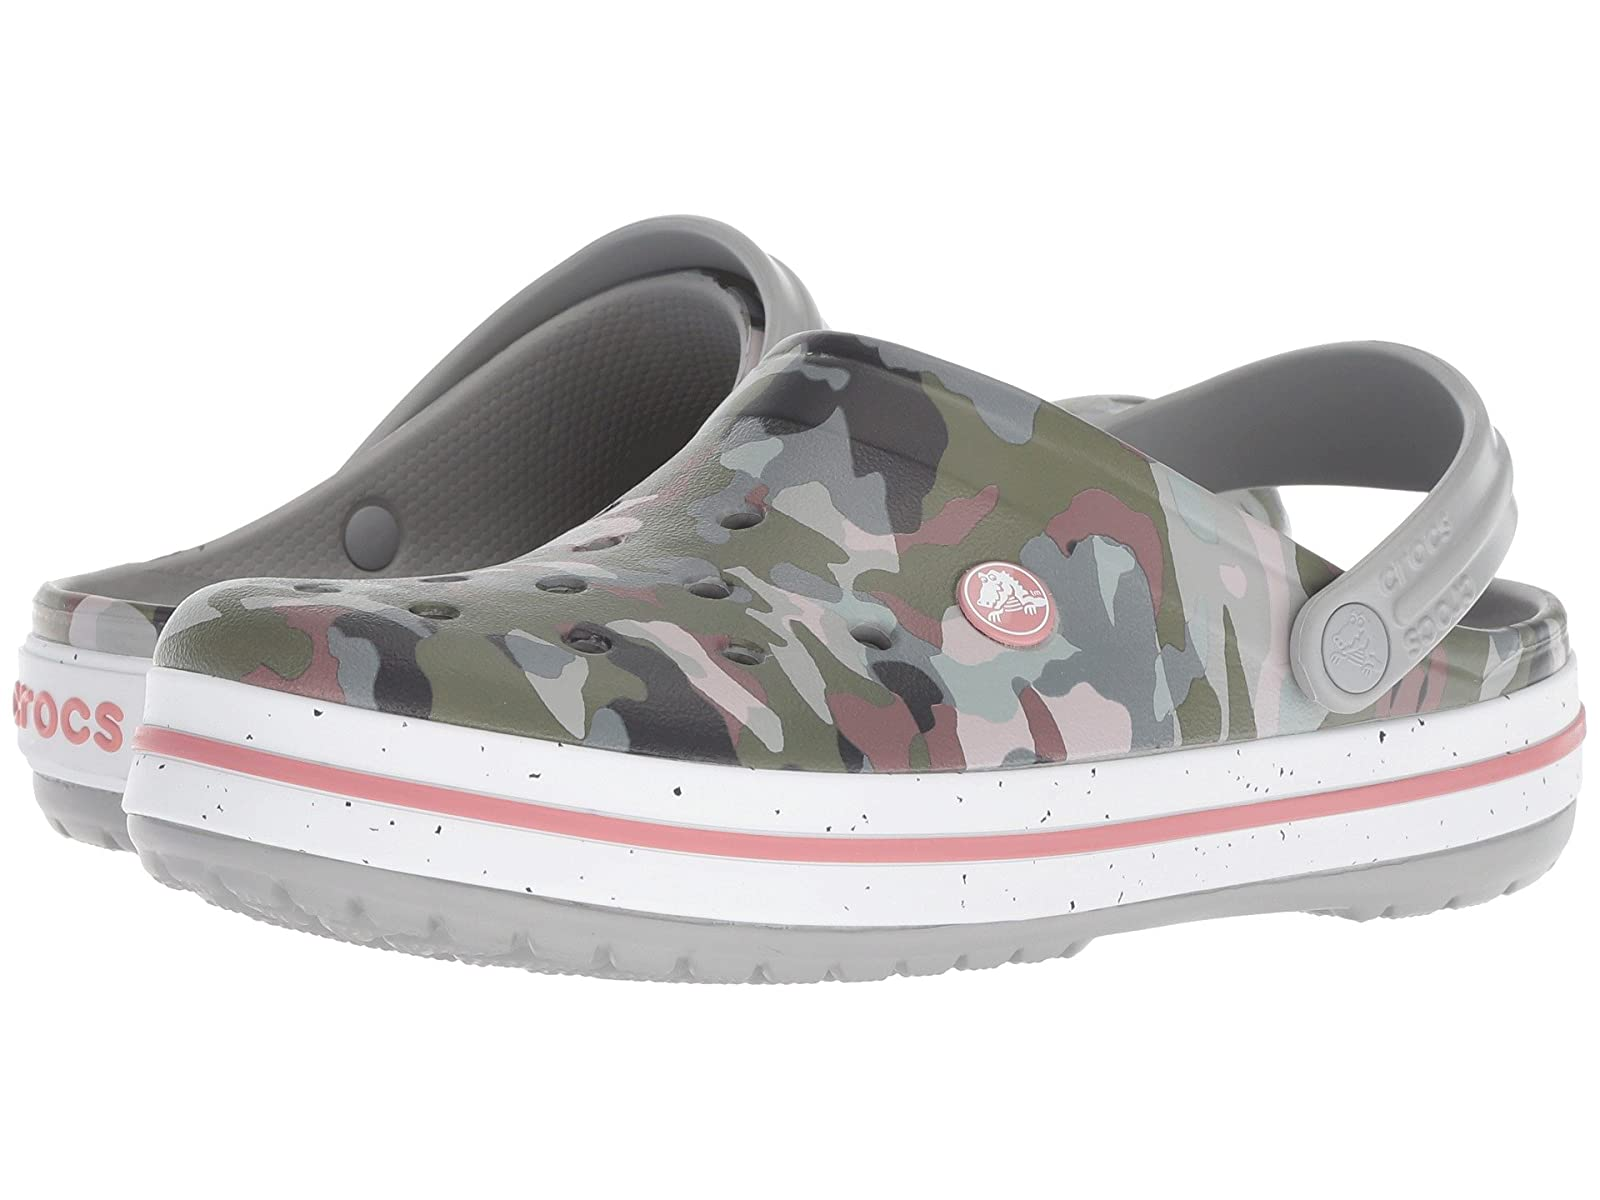 Crocs Crocband Graphic III ClogCheap and distinctive eye-catching shoes